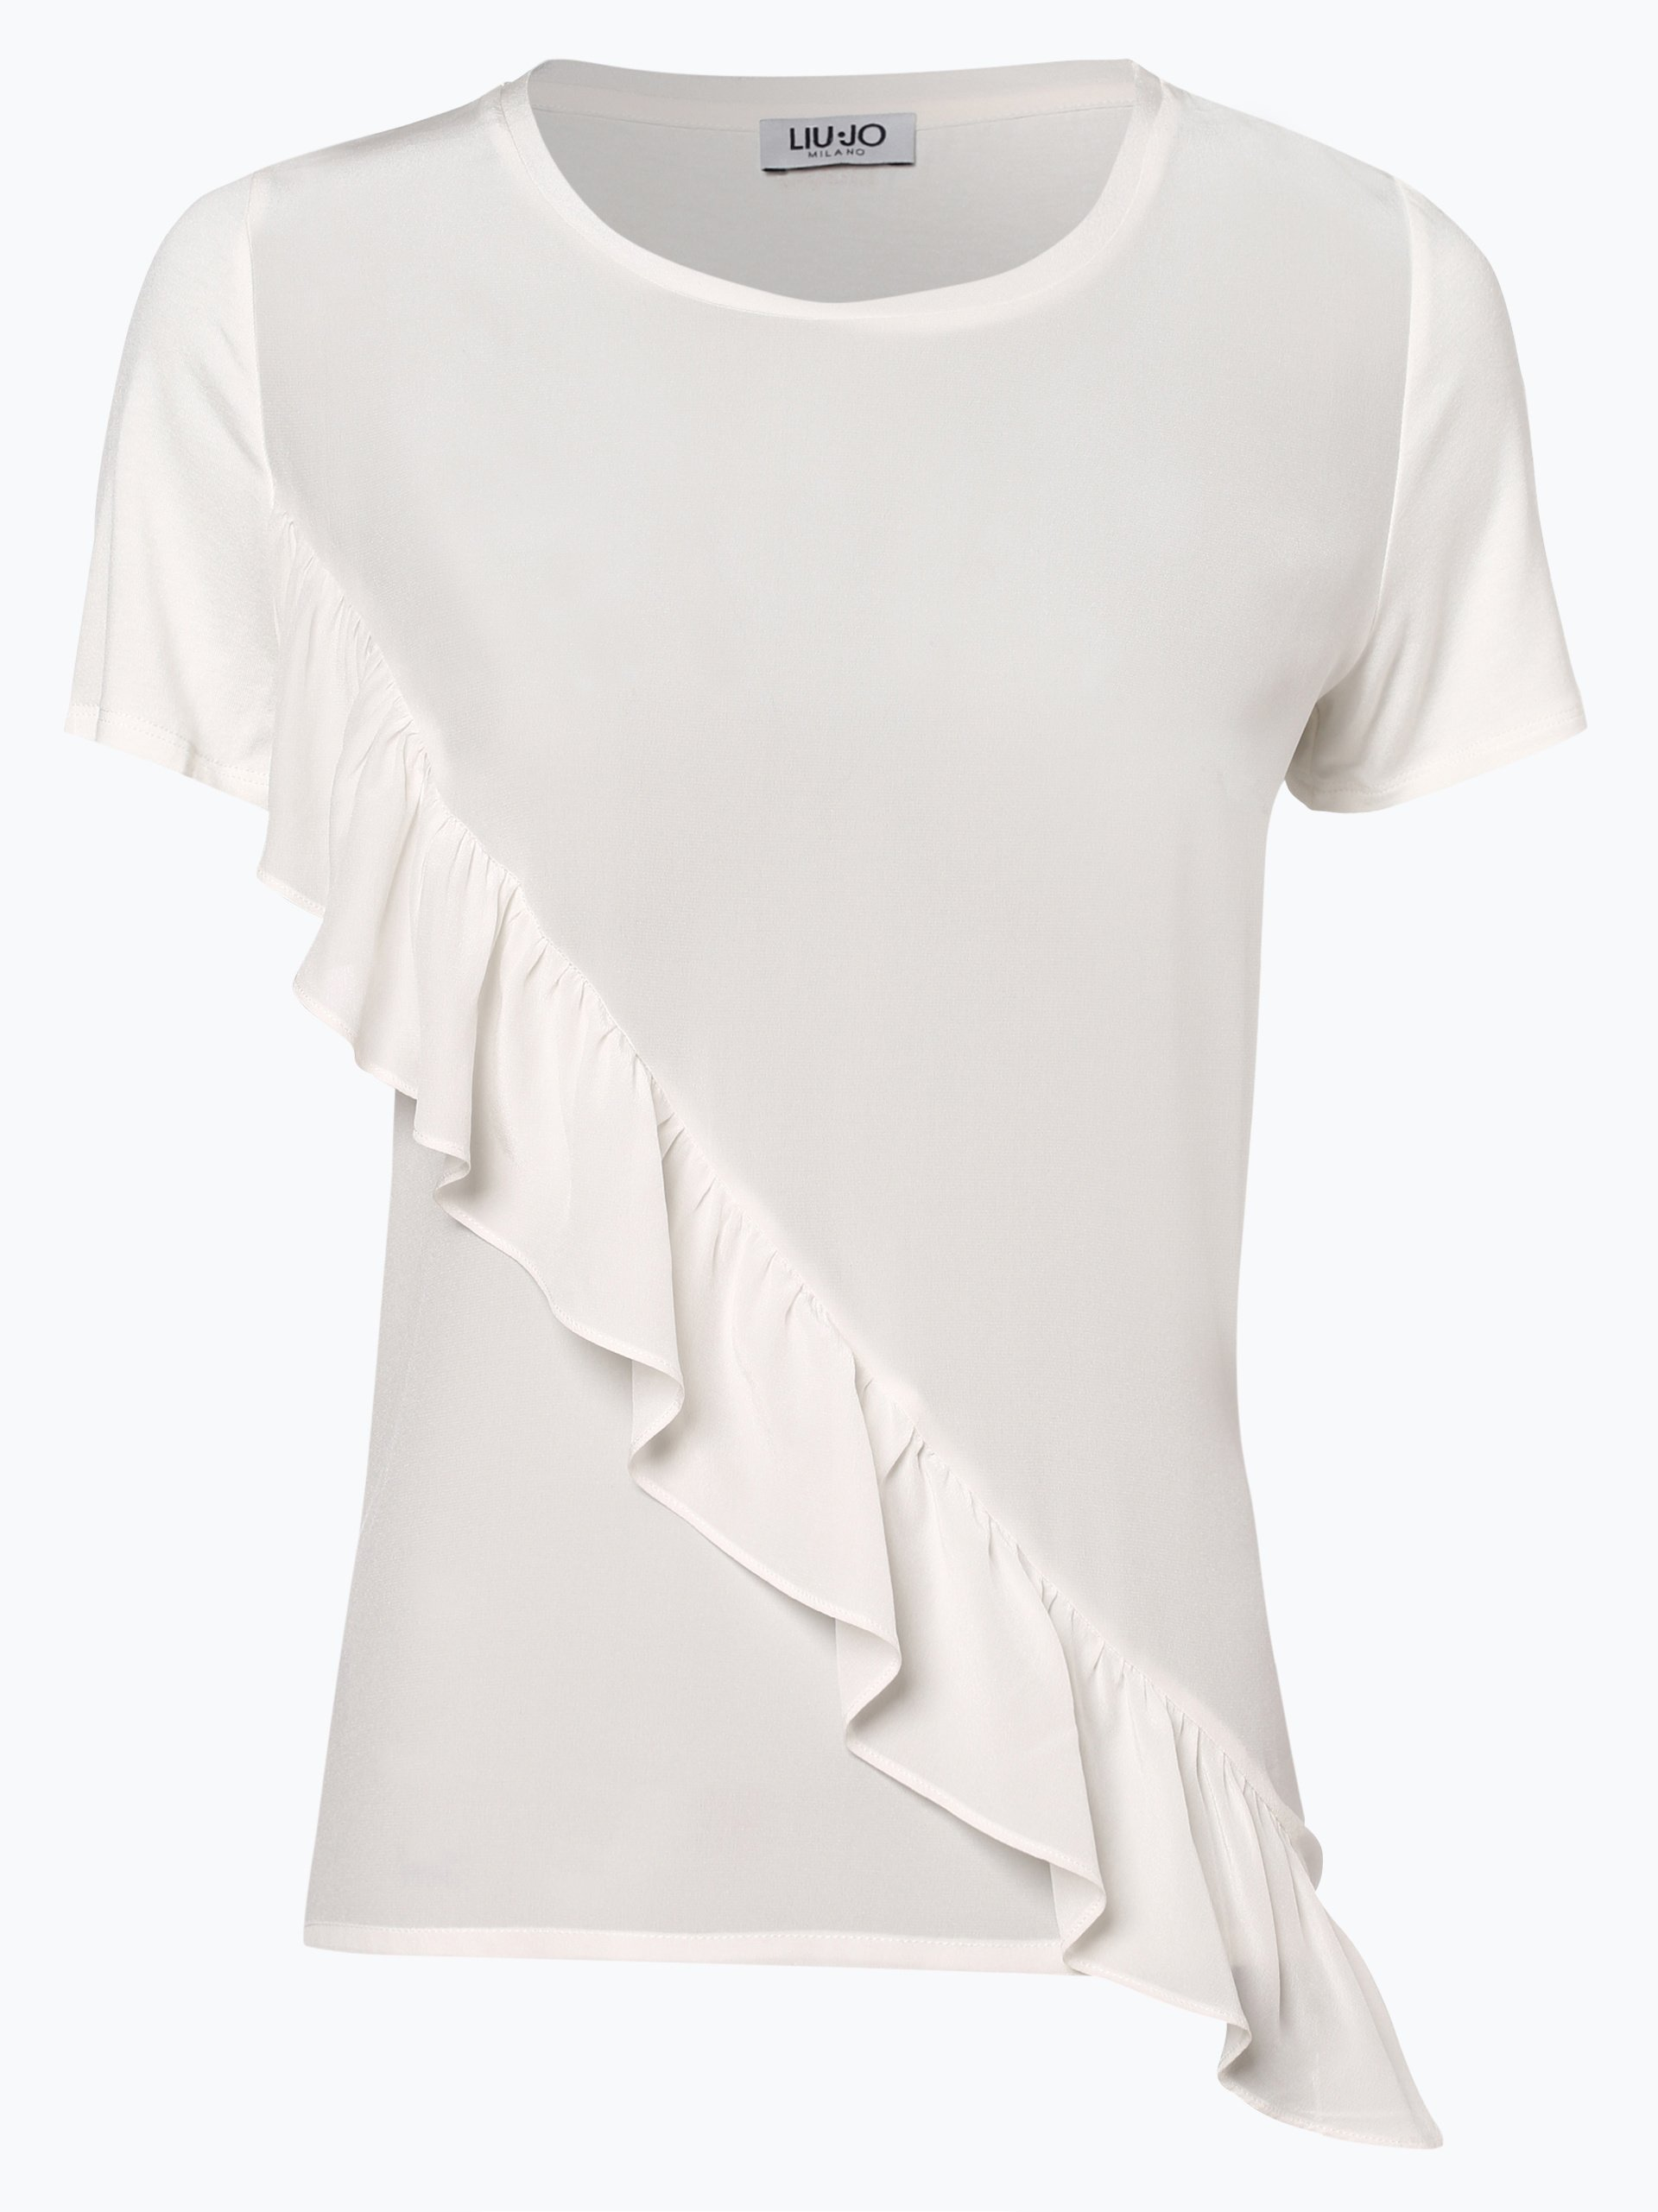 Liu Jo Collection Damen T-Shirt mit Seiden-Anteil